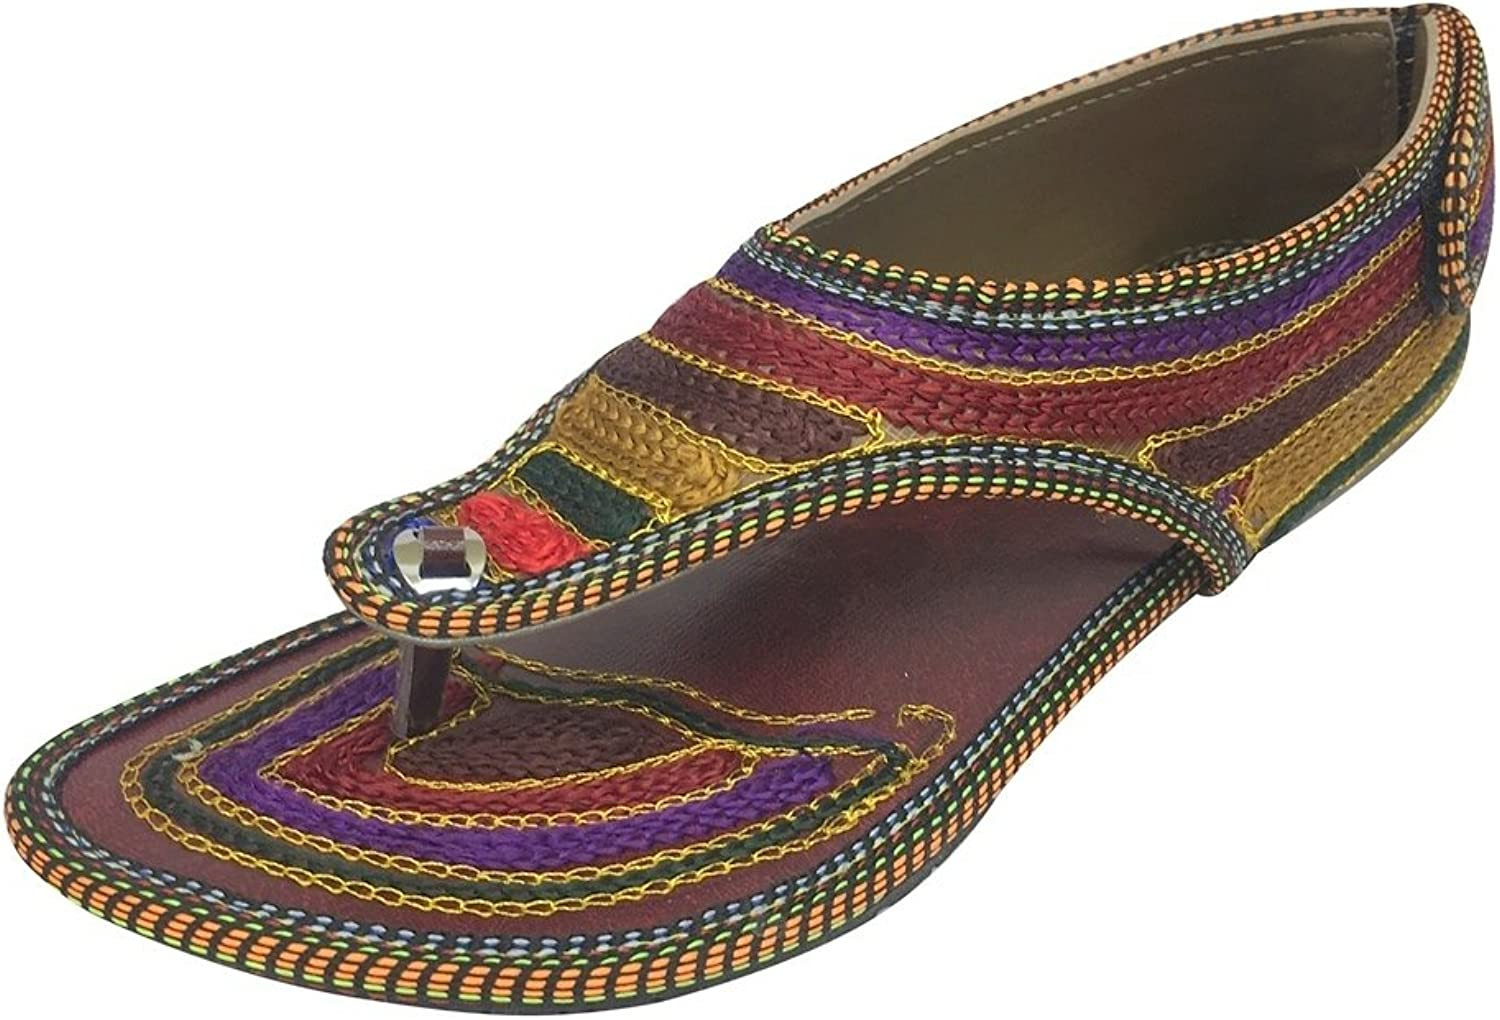 Step n Style Flat Traditional Sandals Handmade Sandals Indian Ethnic Sandals Juttis